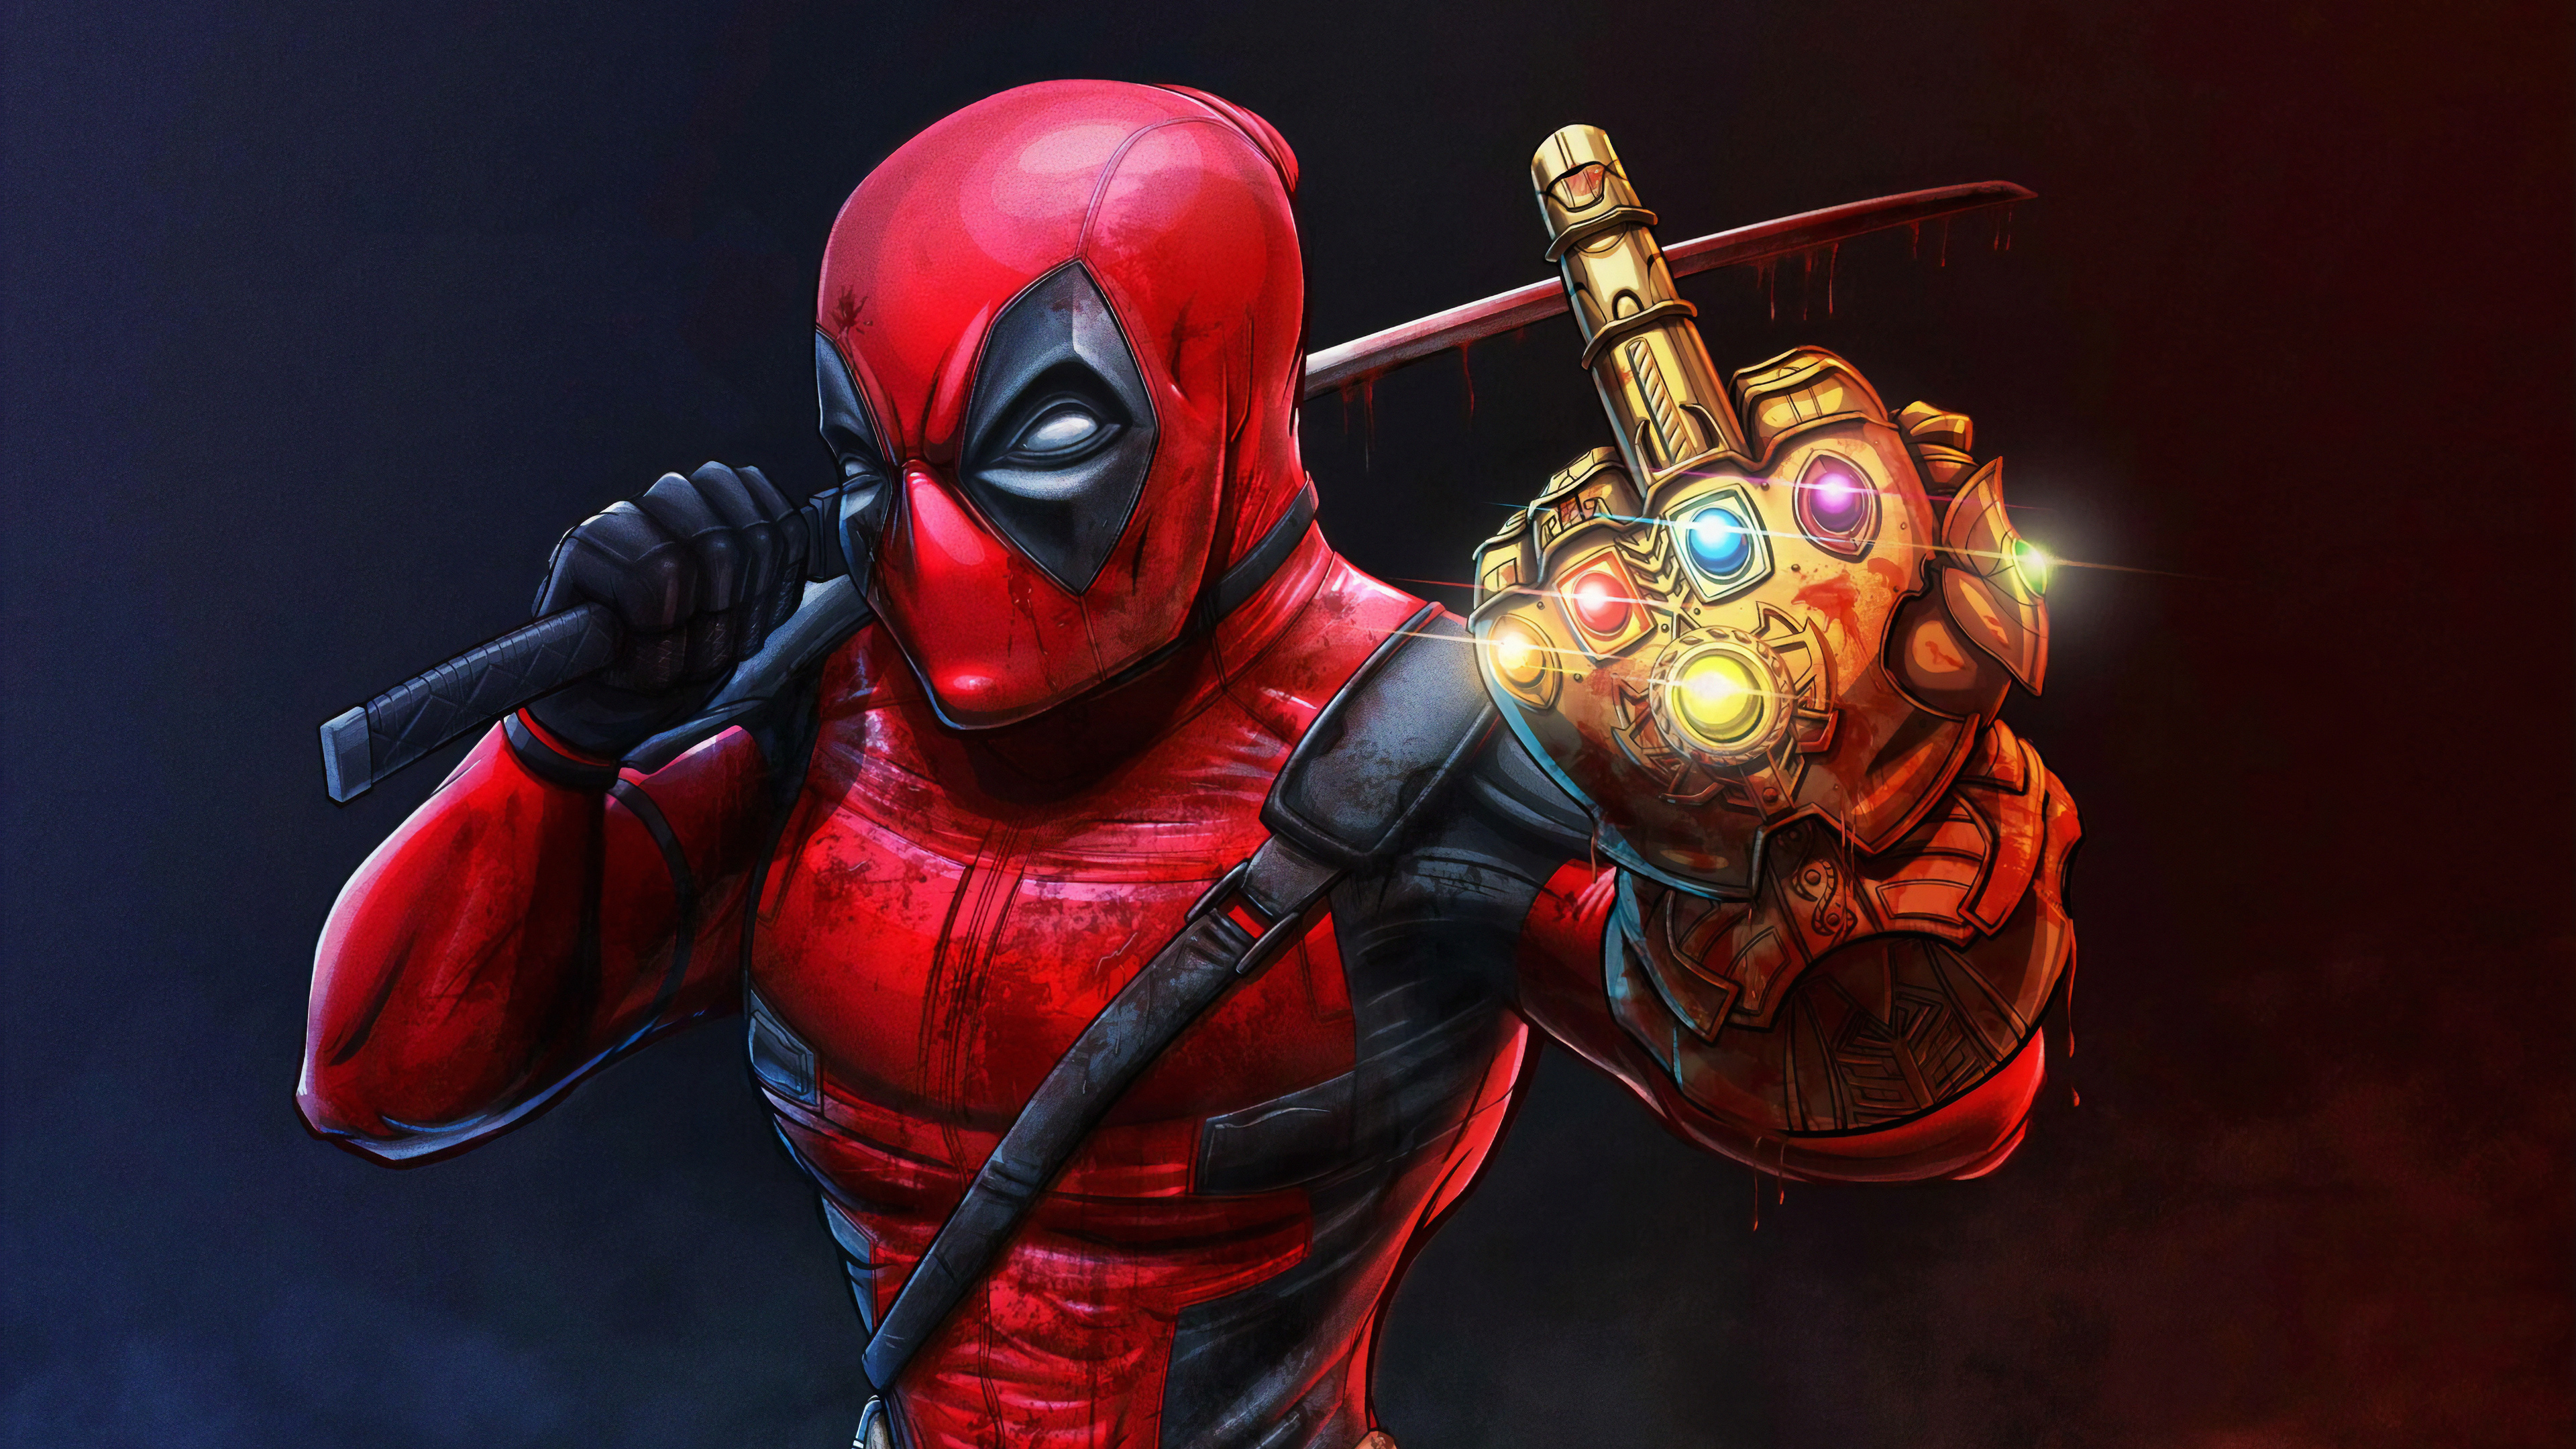 Wallpaper 4k Deadpool With Thanos Infinity Gauntlet 4k Wallpapers Artist Wallpapers Artwork Wallpapers Deadpool Wallpapers Digital Art Wallpapers Hd Wallpapers Superheroes Wallpapers